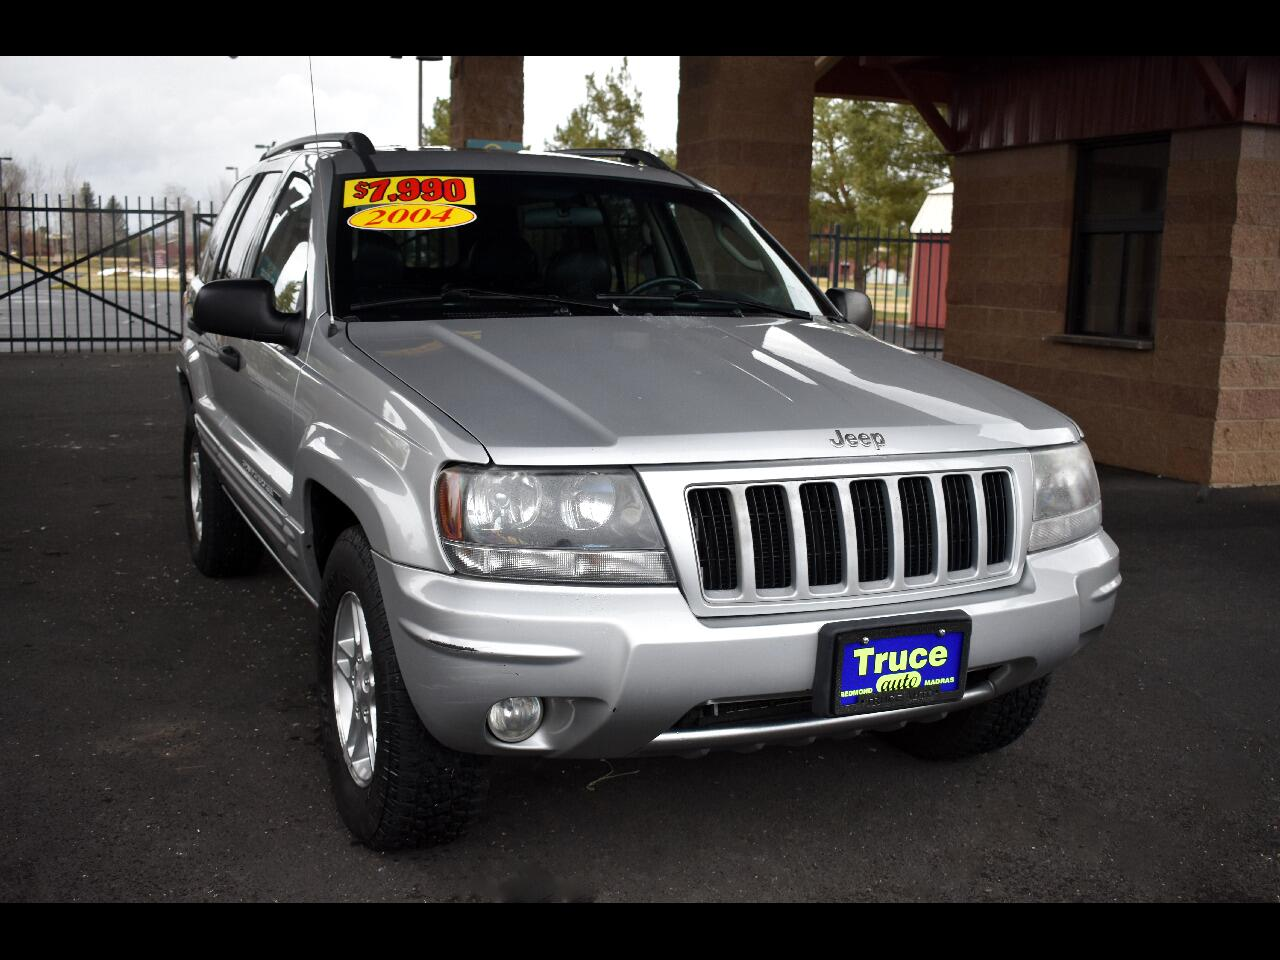 2004 Jeep Grand Cherokee 4 DR LAREDO 4WD  ***LOW MILES ***